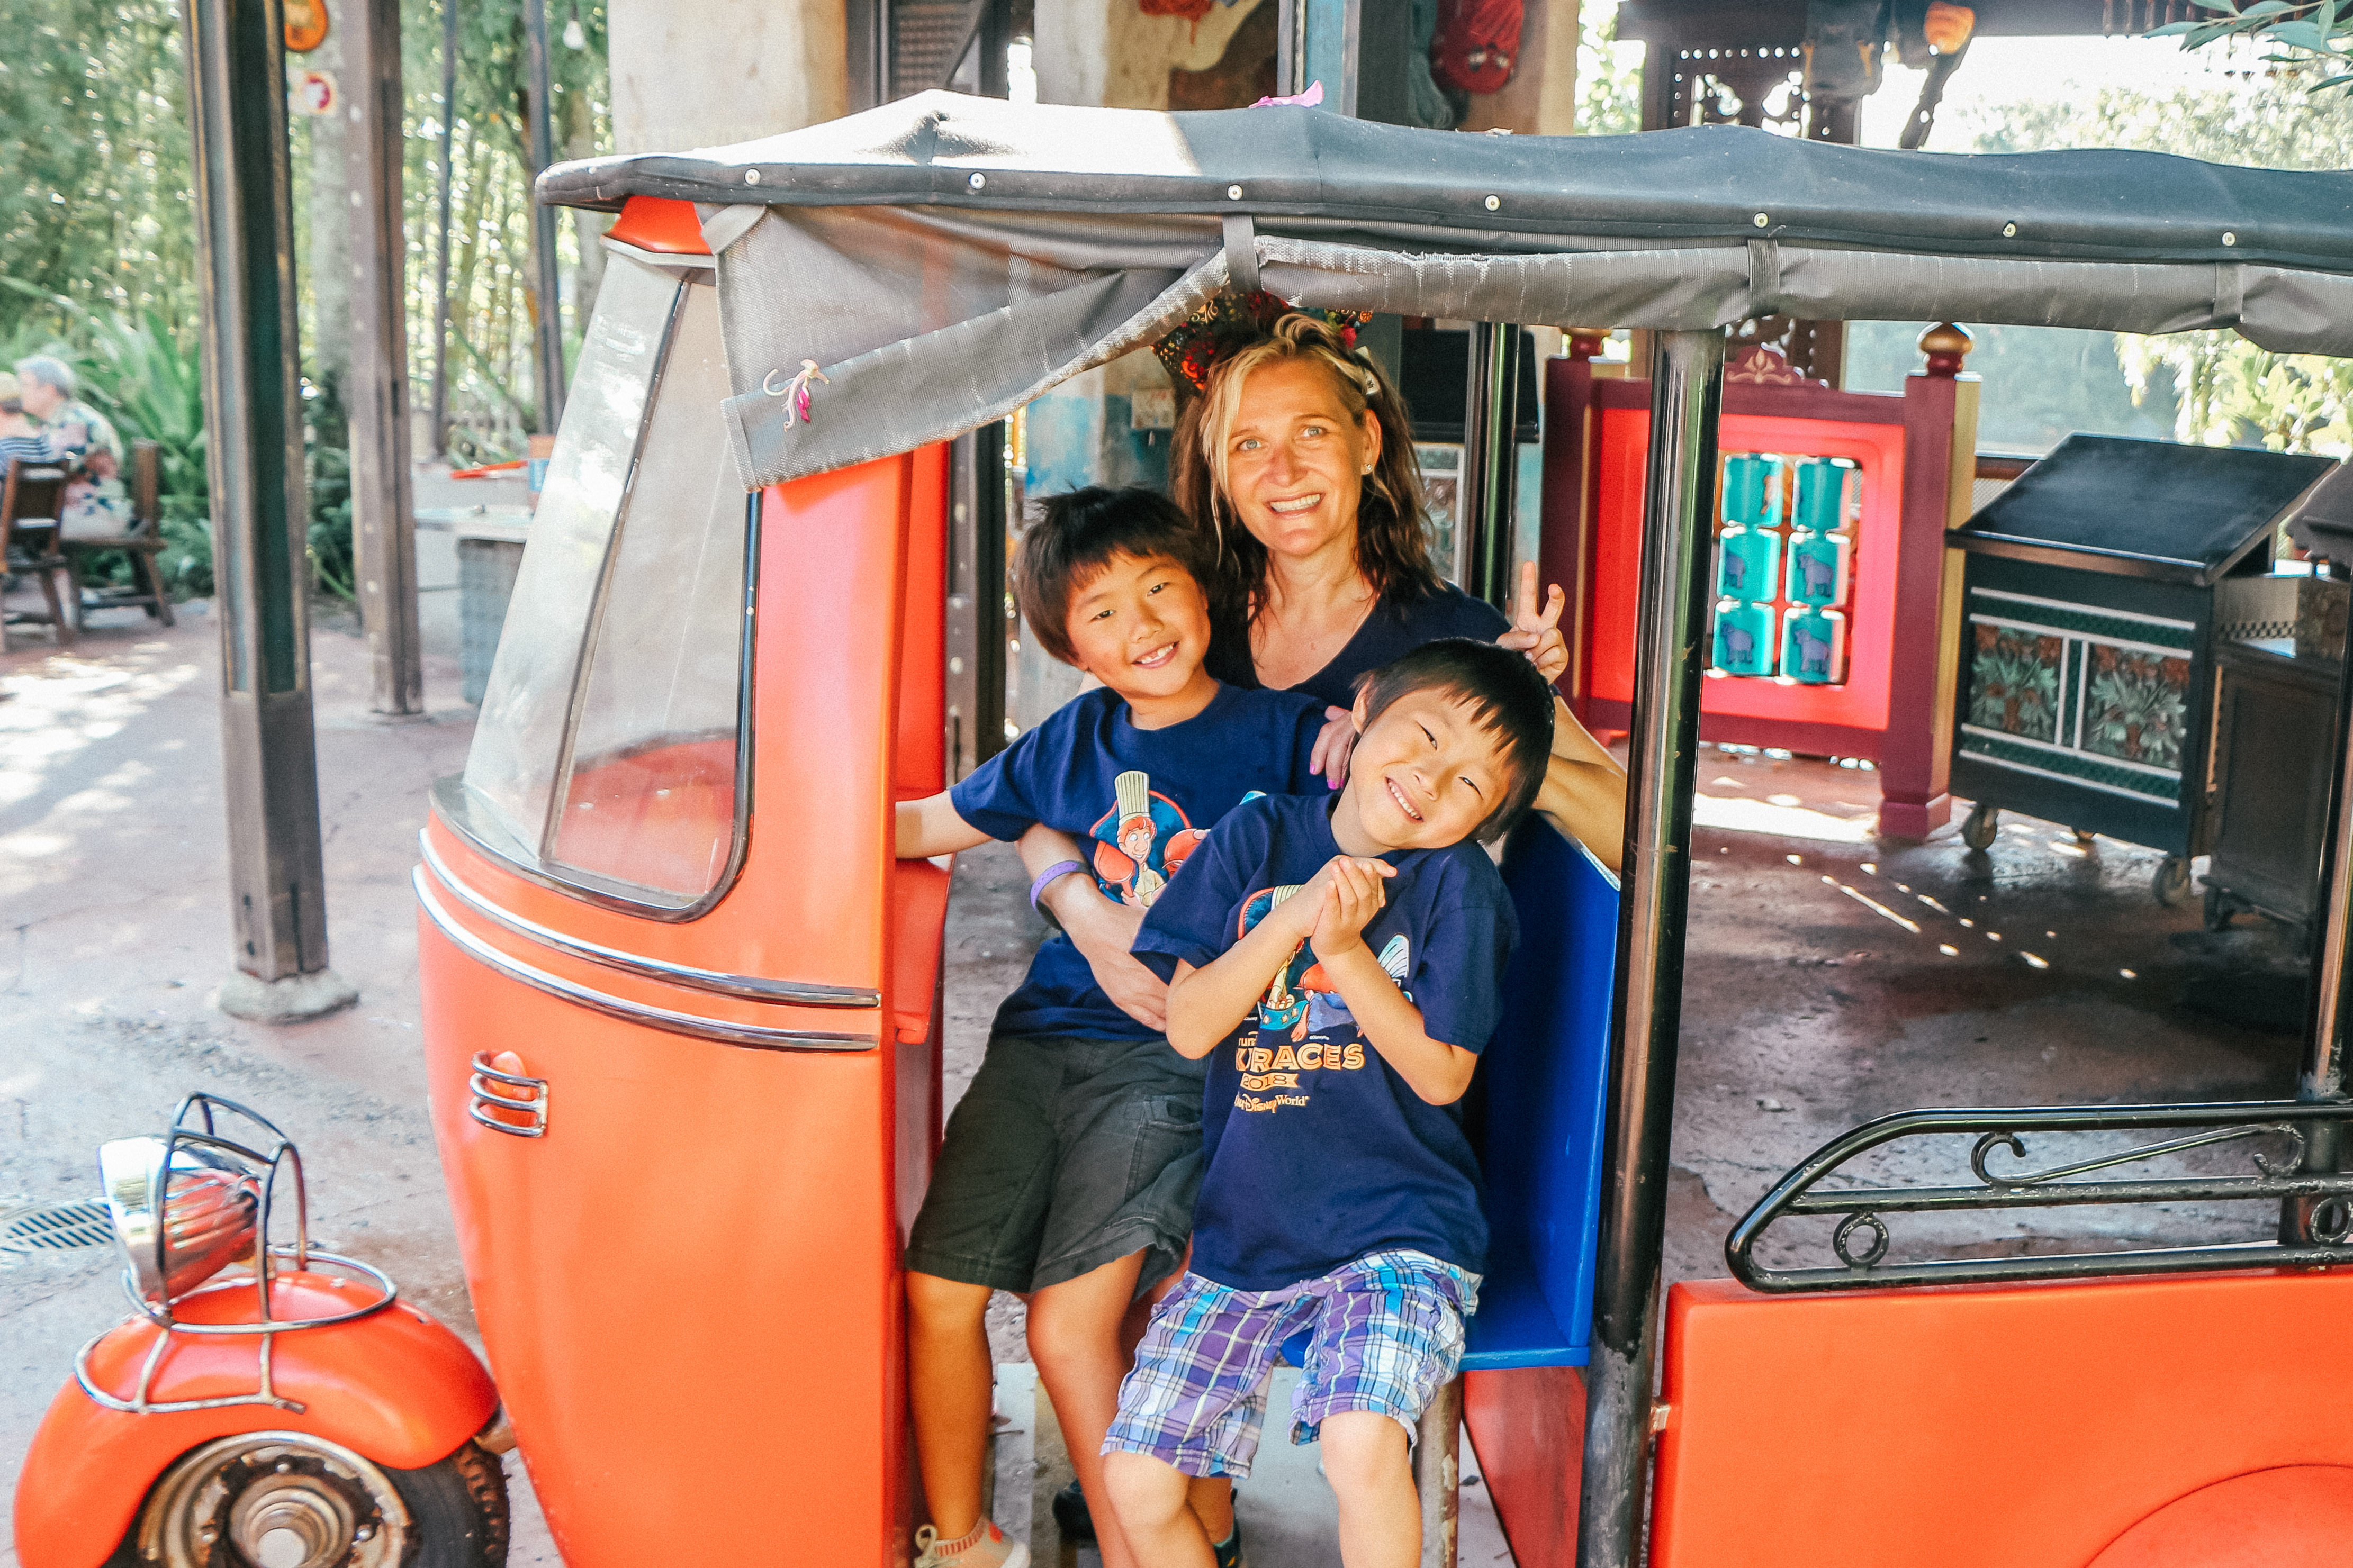 ooking for Disney Magic Band tips, TravelingMom has you covered.